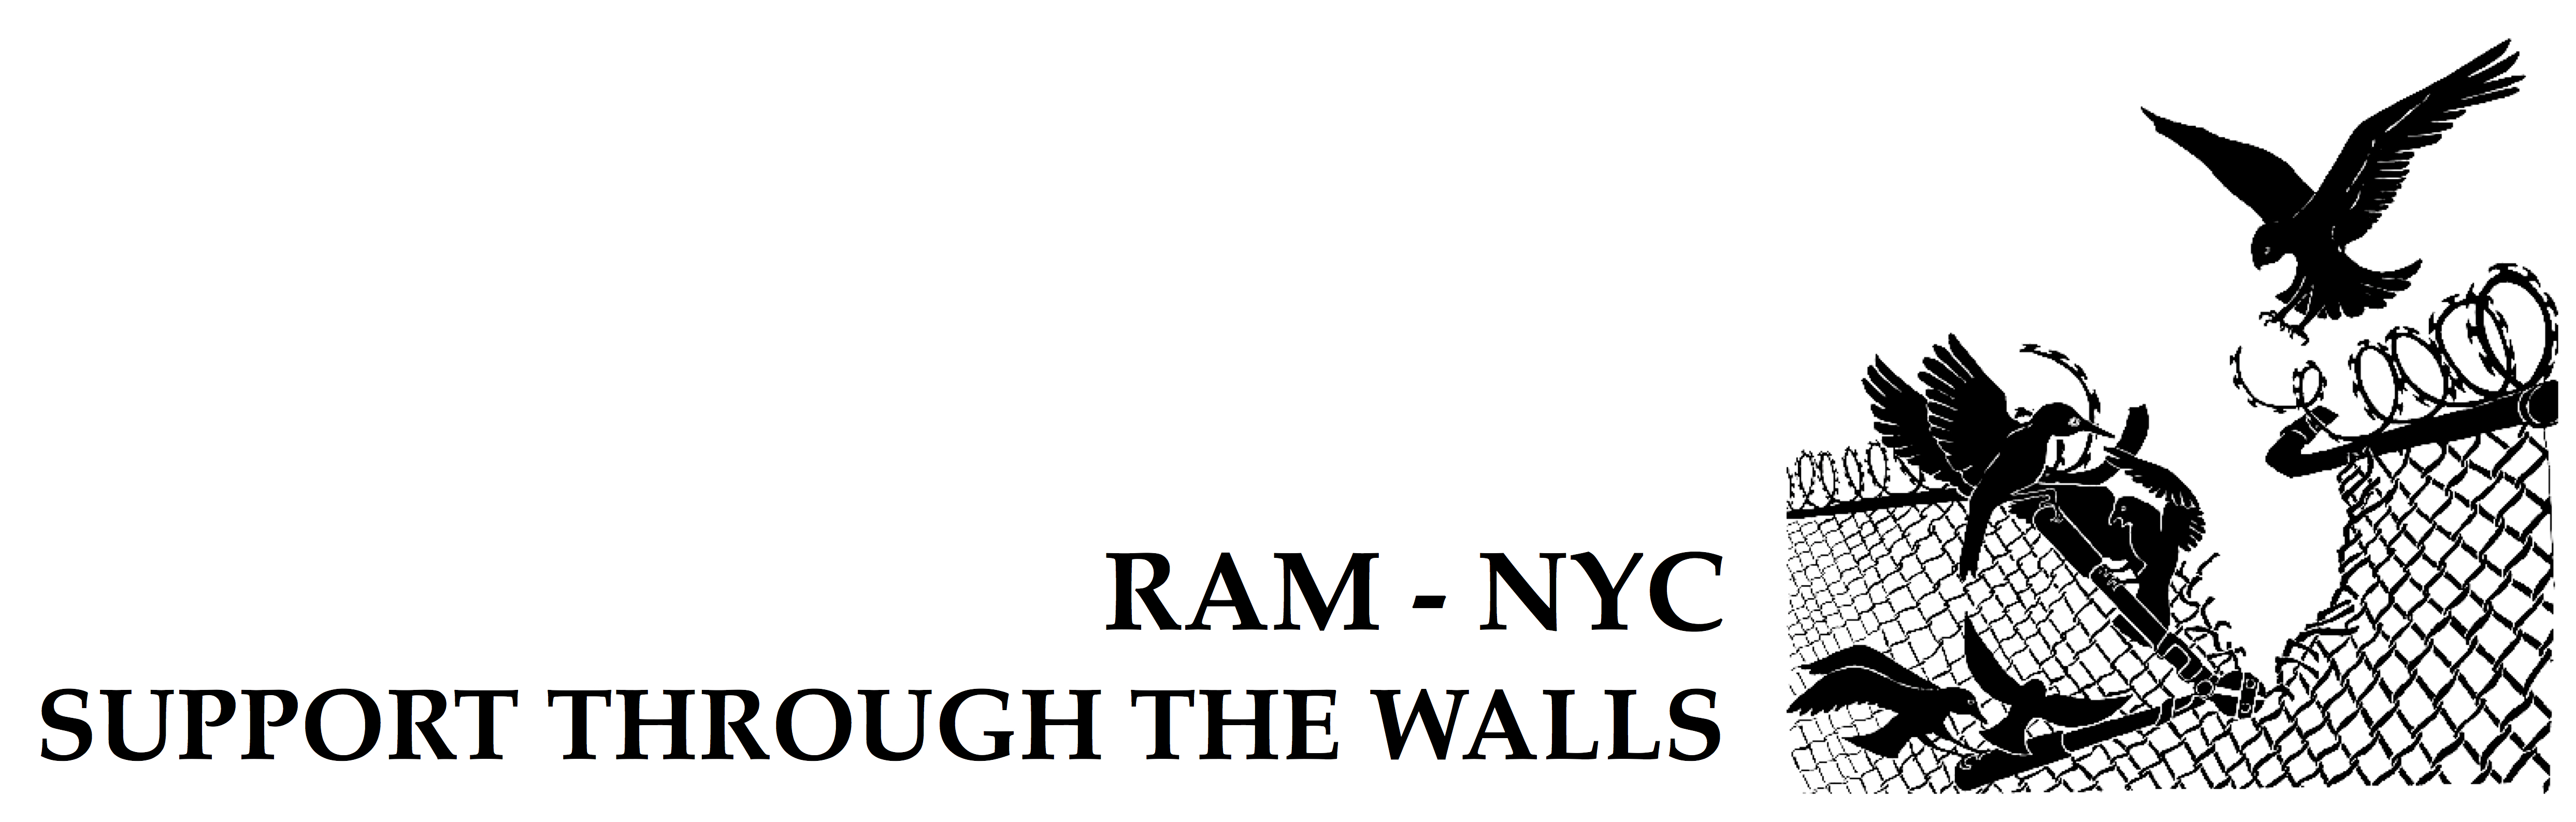 RAM-NYC: Support Through the Walls